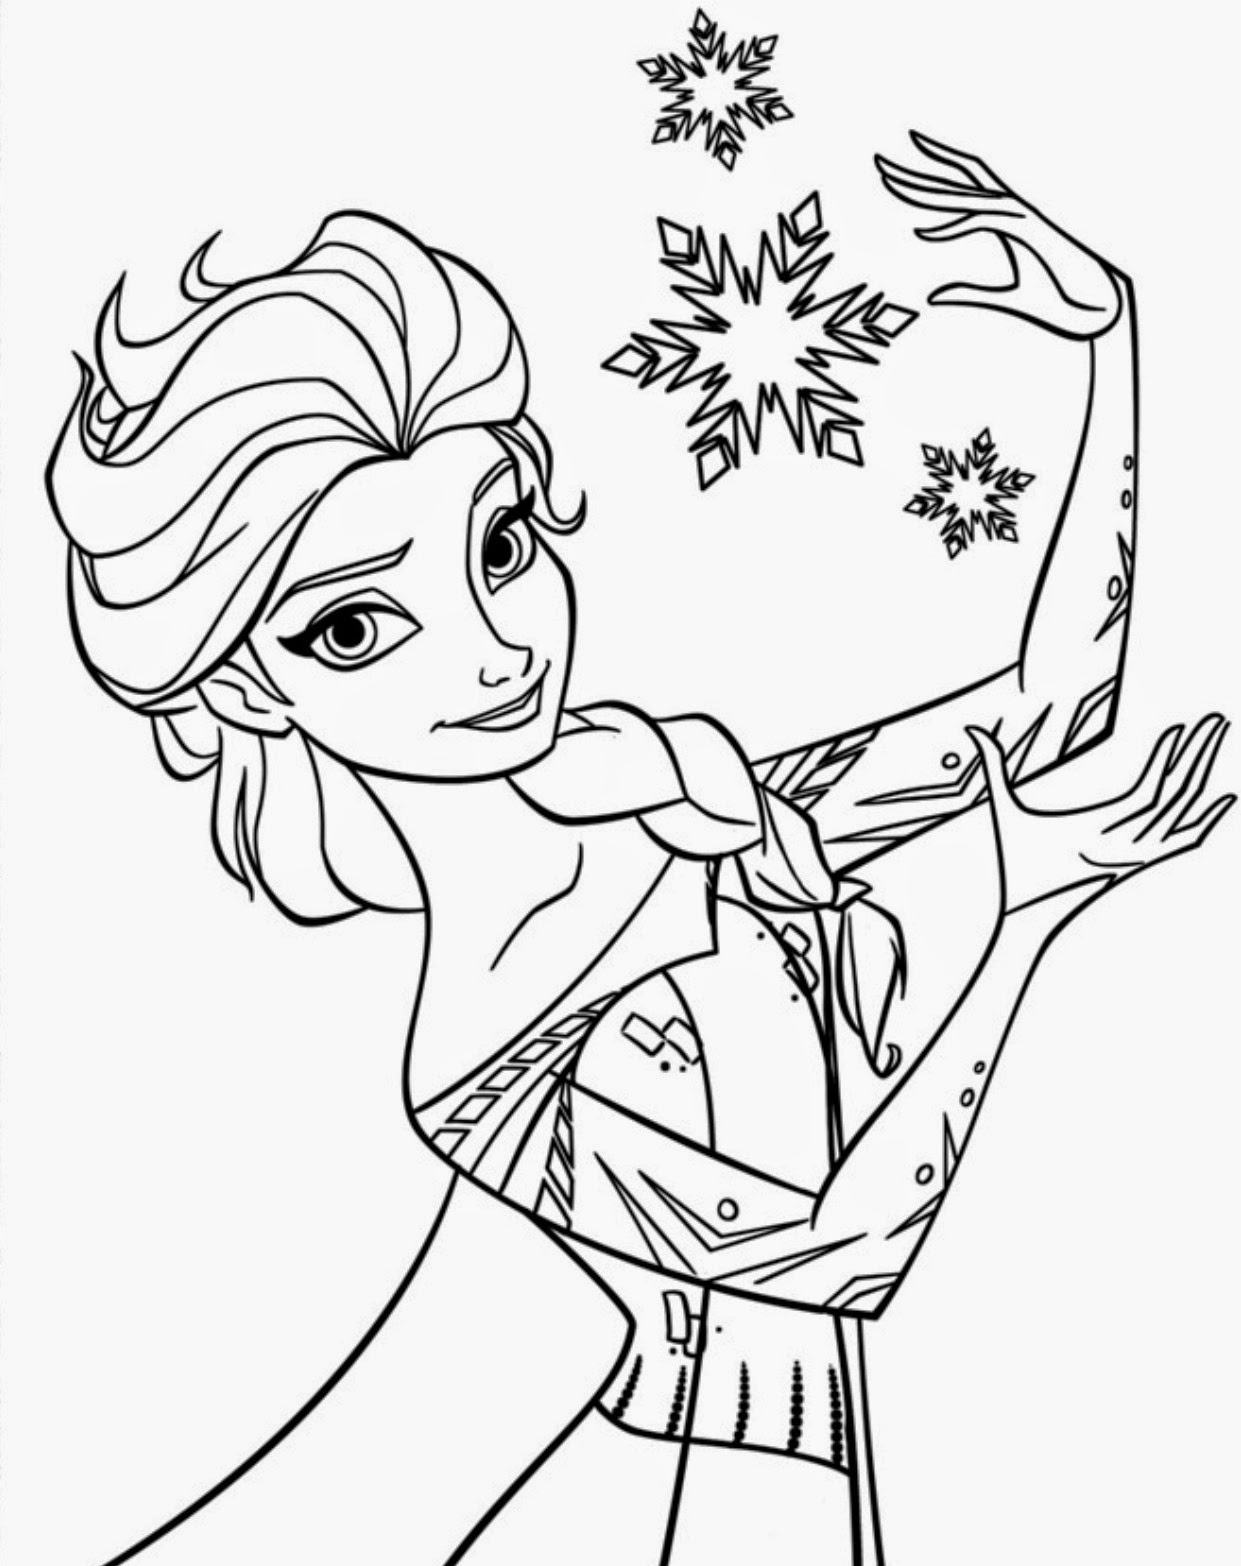 coloring pages to print frozen 15 beautiful disney frozen coloring pages free instant print pages frozen coloring to